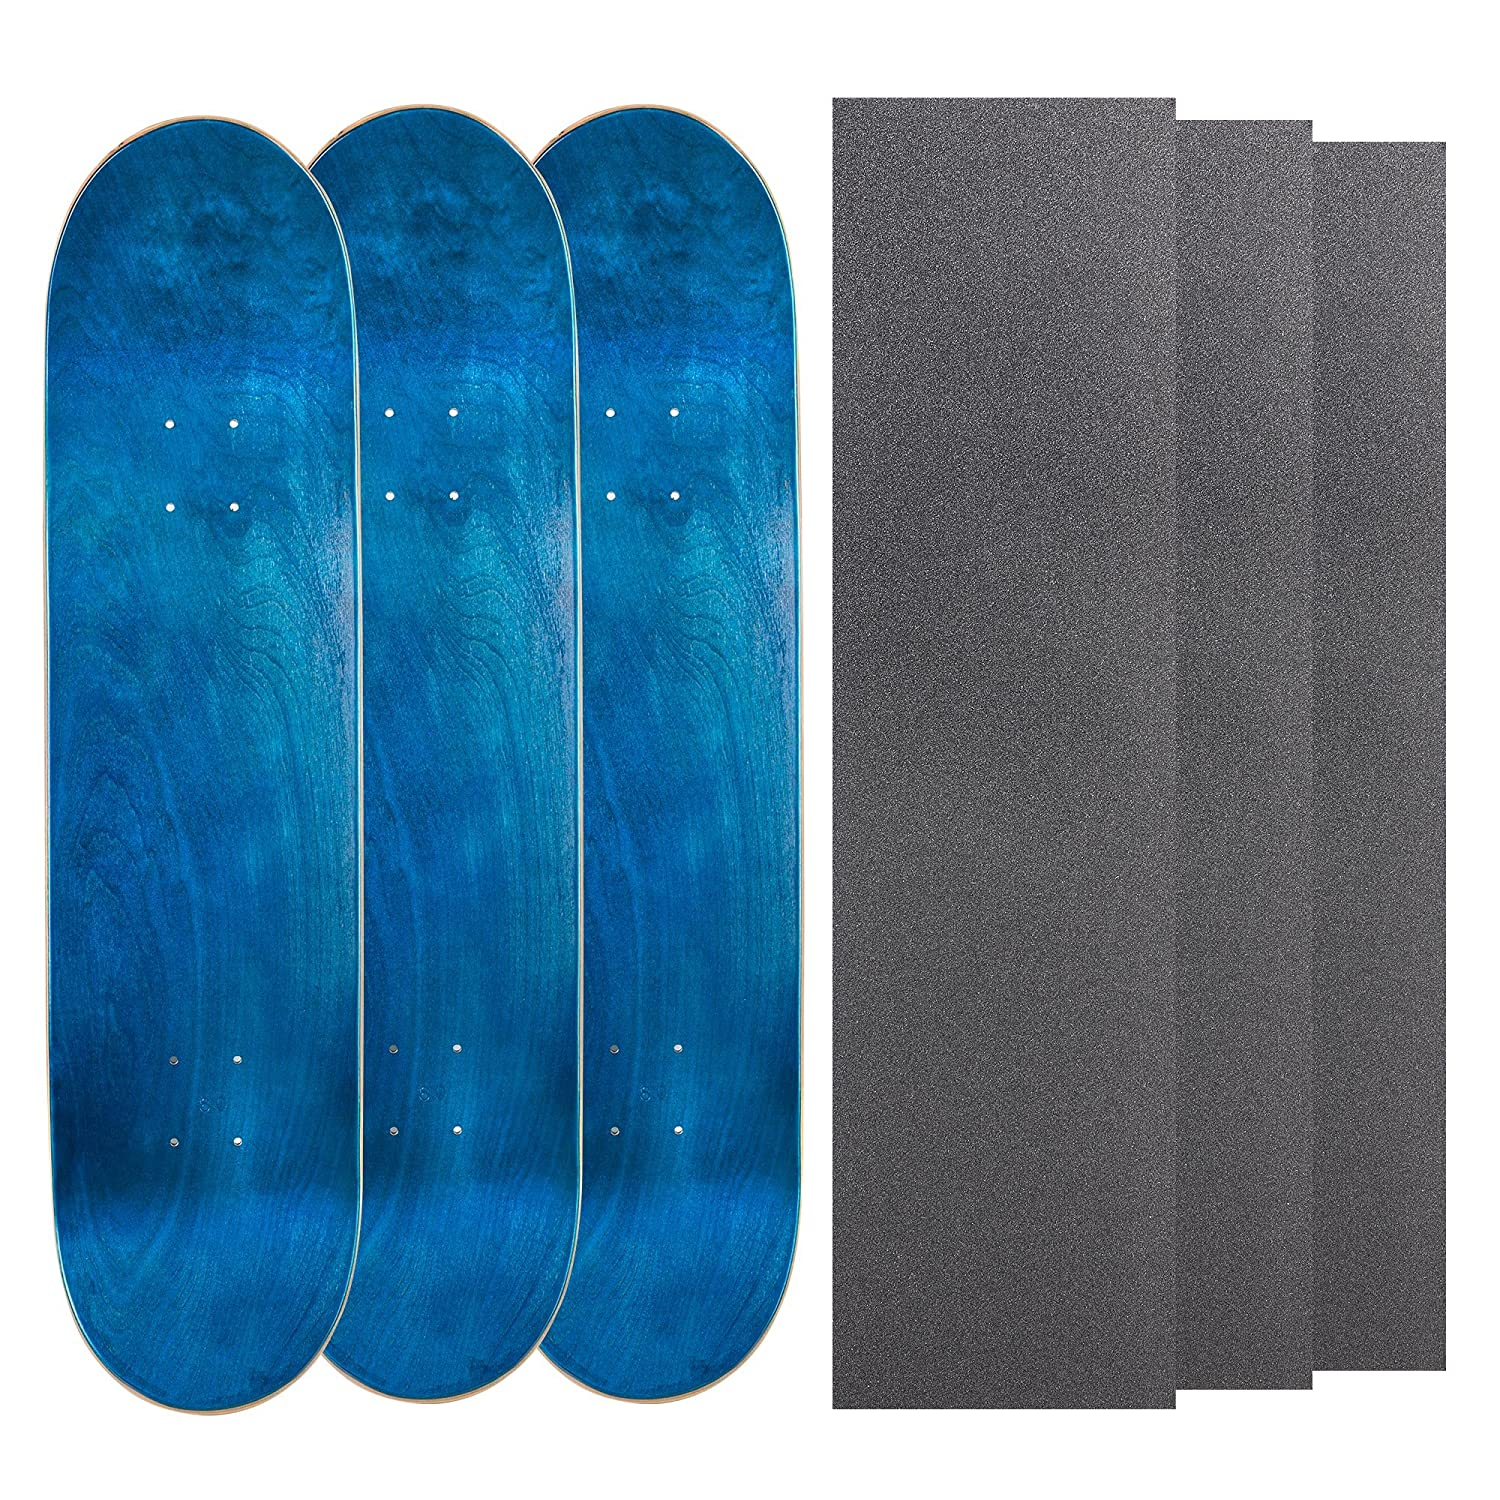 Cal 7 Blank Maple Skateboard Decks with Grip Tape Bundle of 3, Combinations